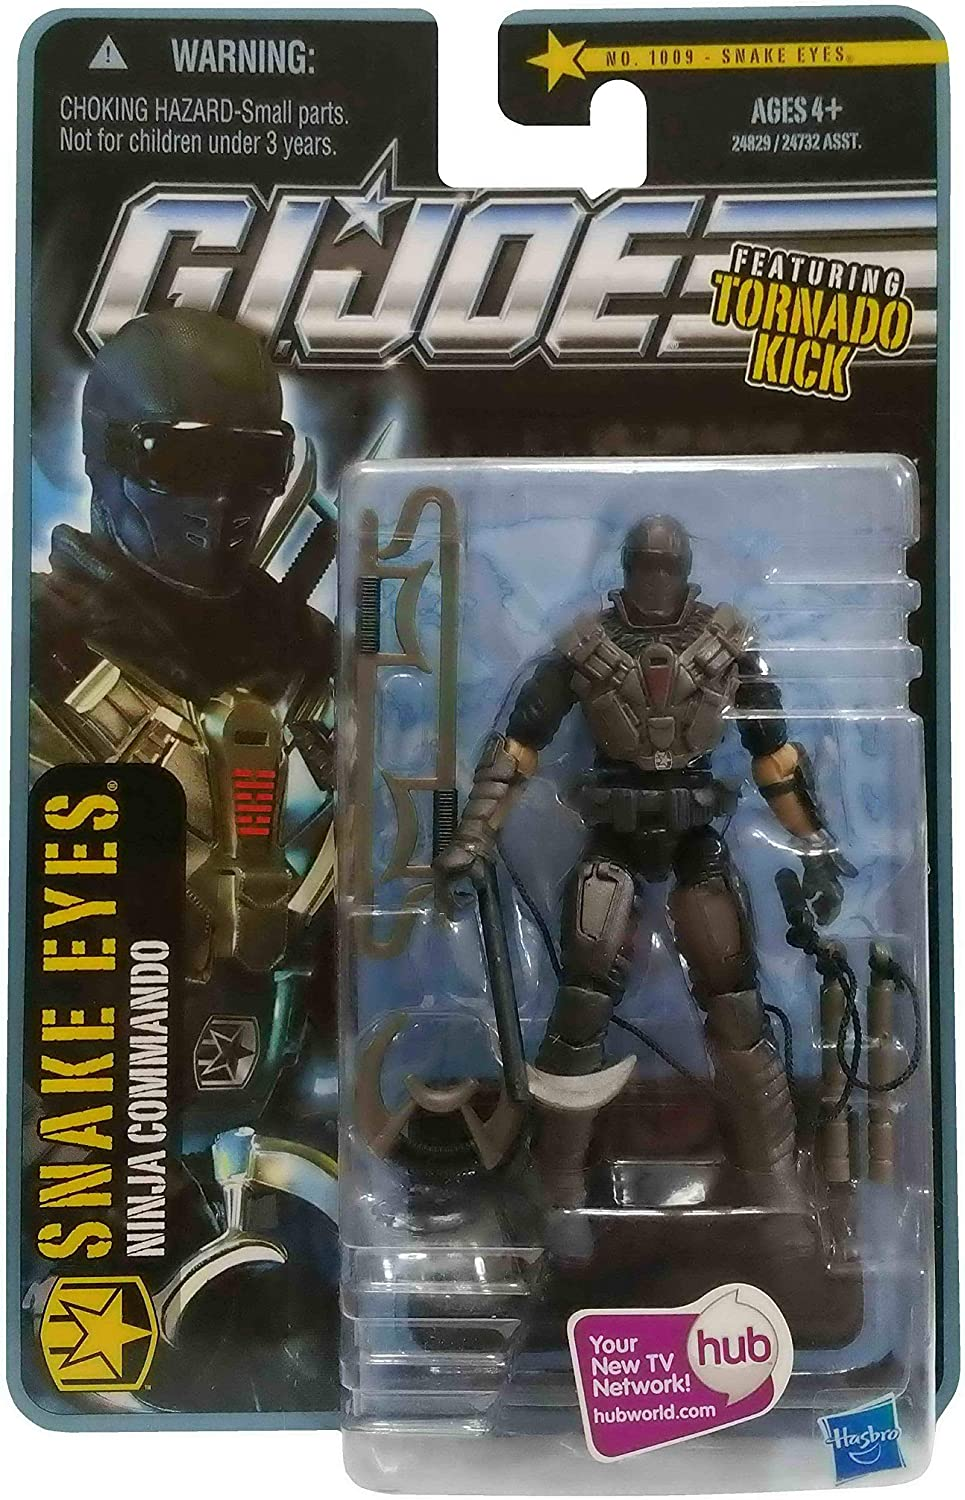 GI Joe Pursuit of Cobra (POC) Snake Eyes (Ninja Commando) with Tornado Kick 3.75 Inch Action Figure